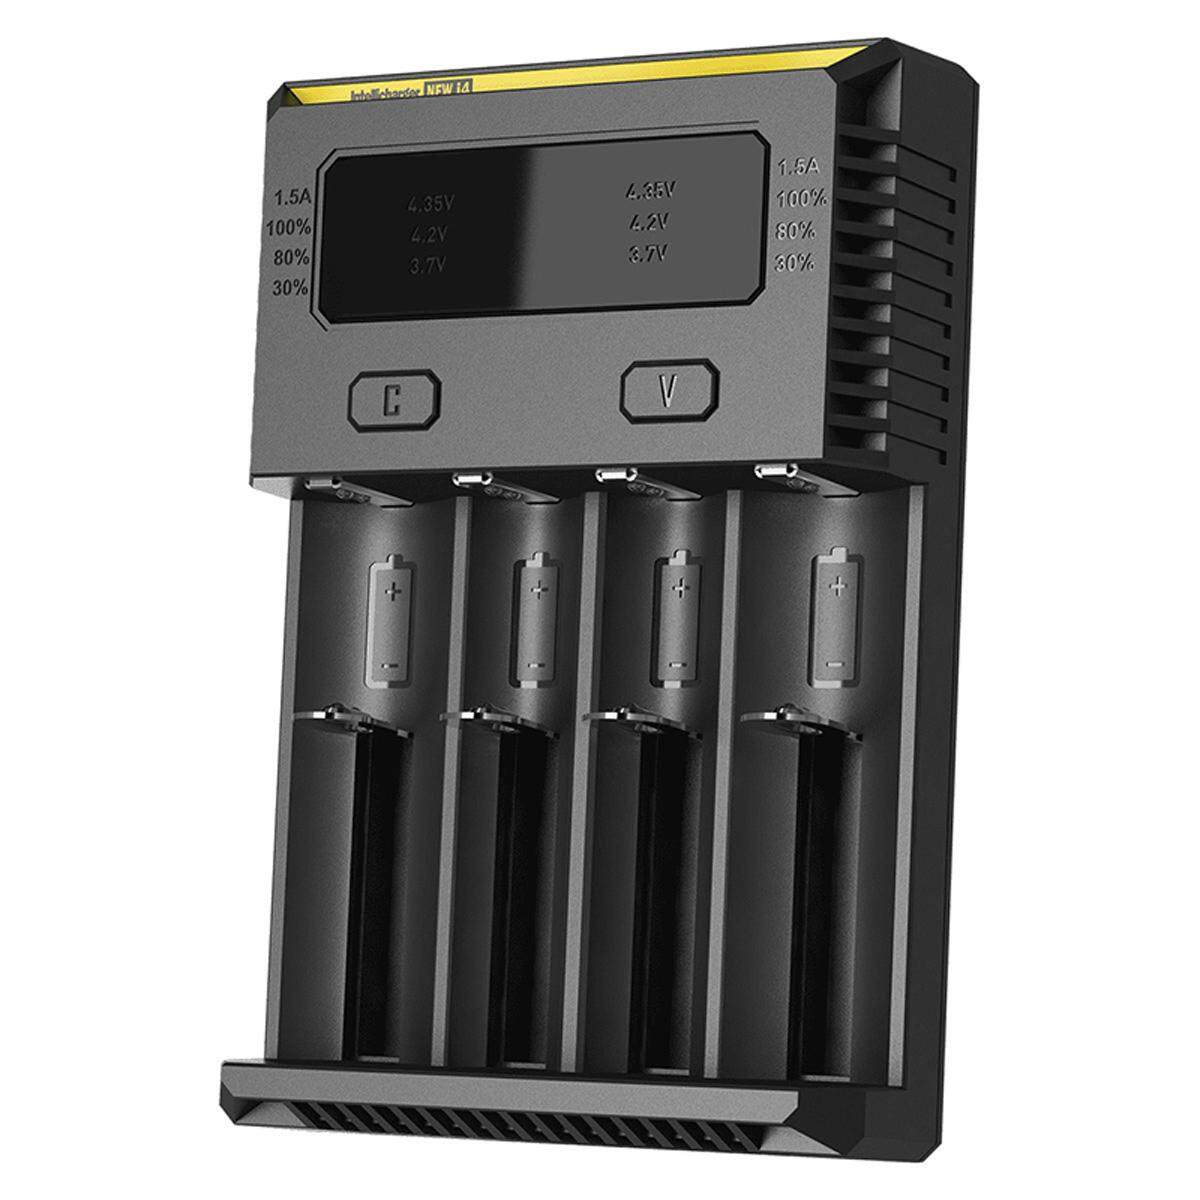 Nitecore New I4 Battery Charger - Black (eu Plug) - Intl By Sea Center.